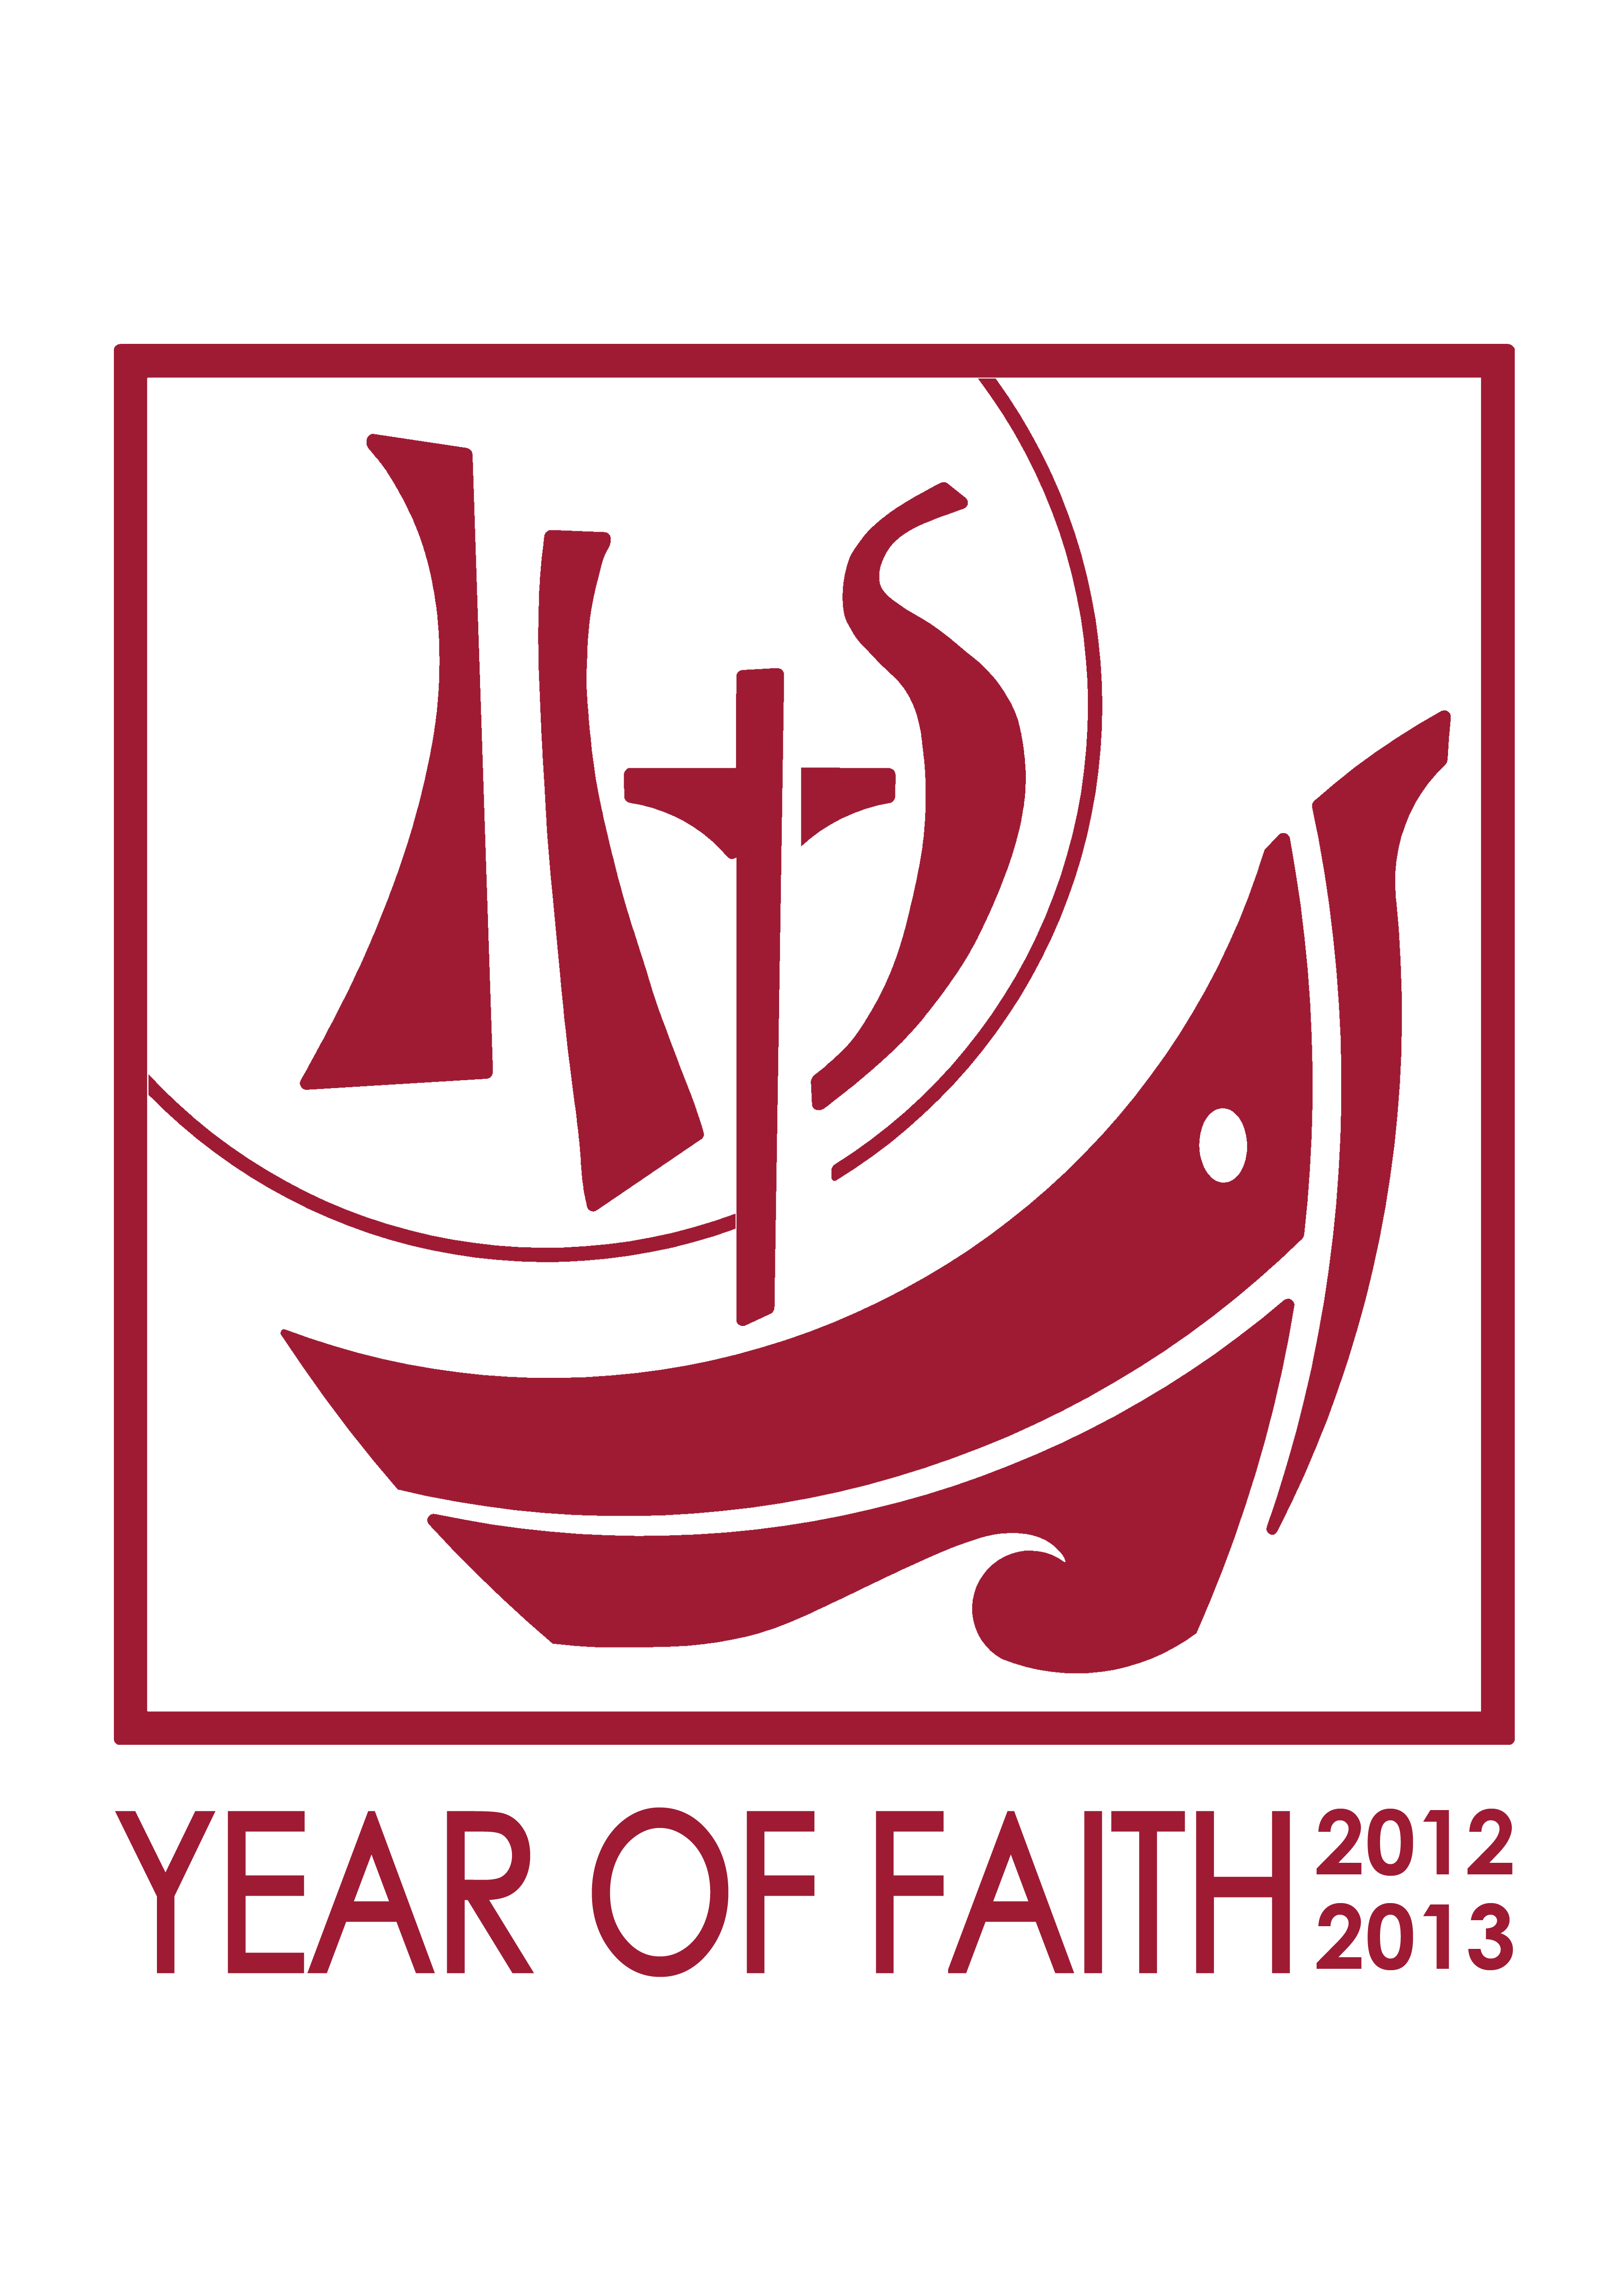 What's Wrong with the Year of Faith?